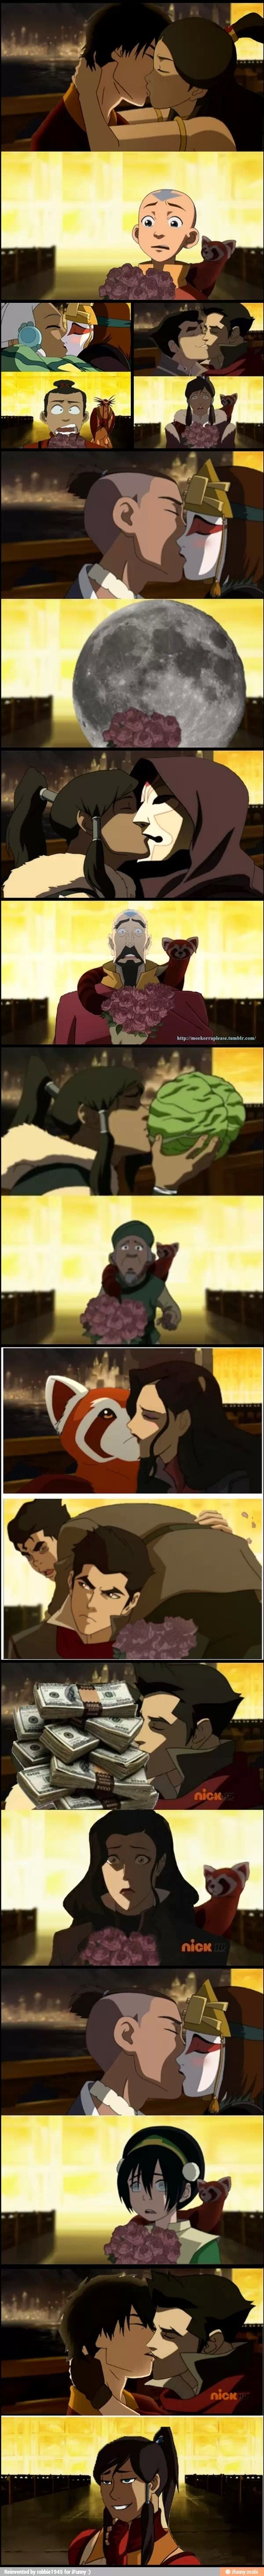 Legend of Korra Wut the heck why is this funny